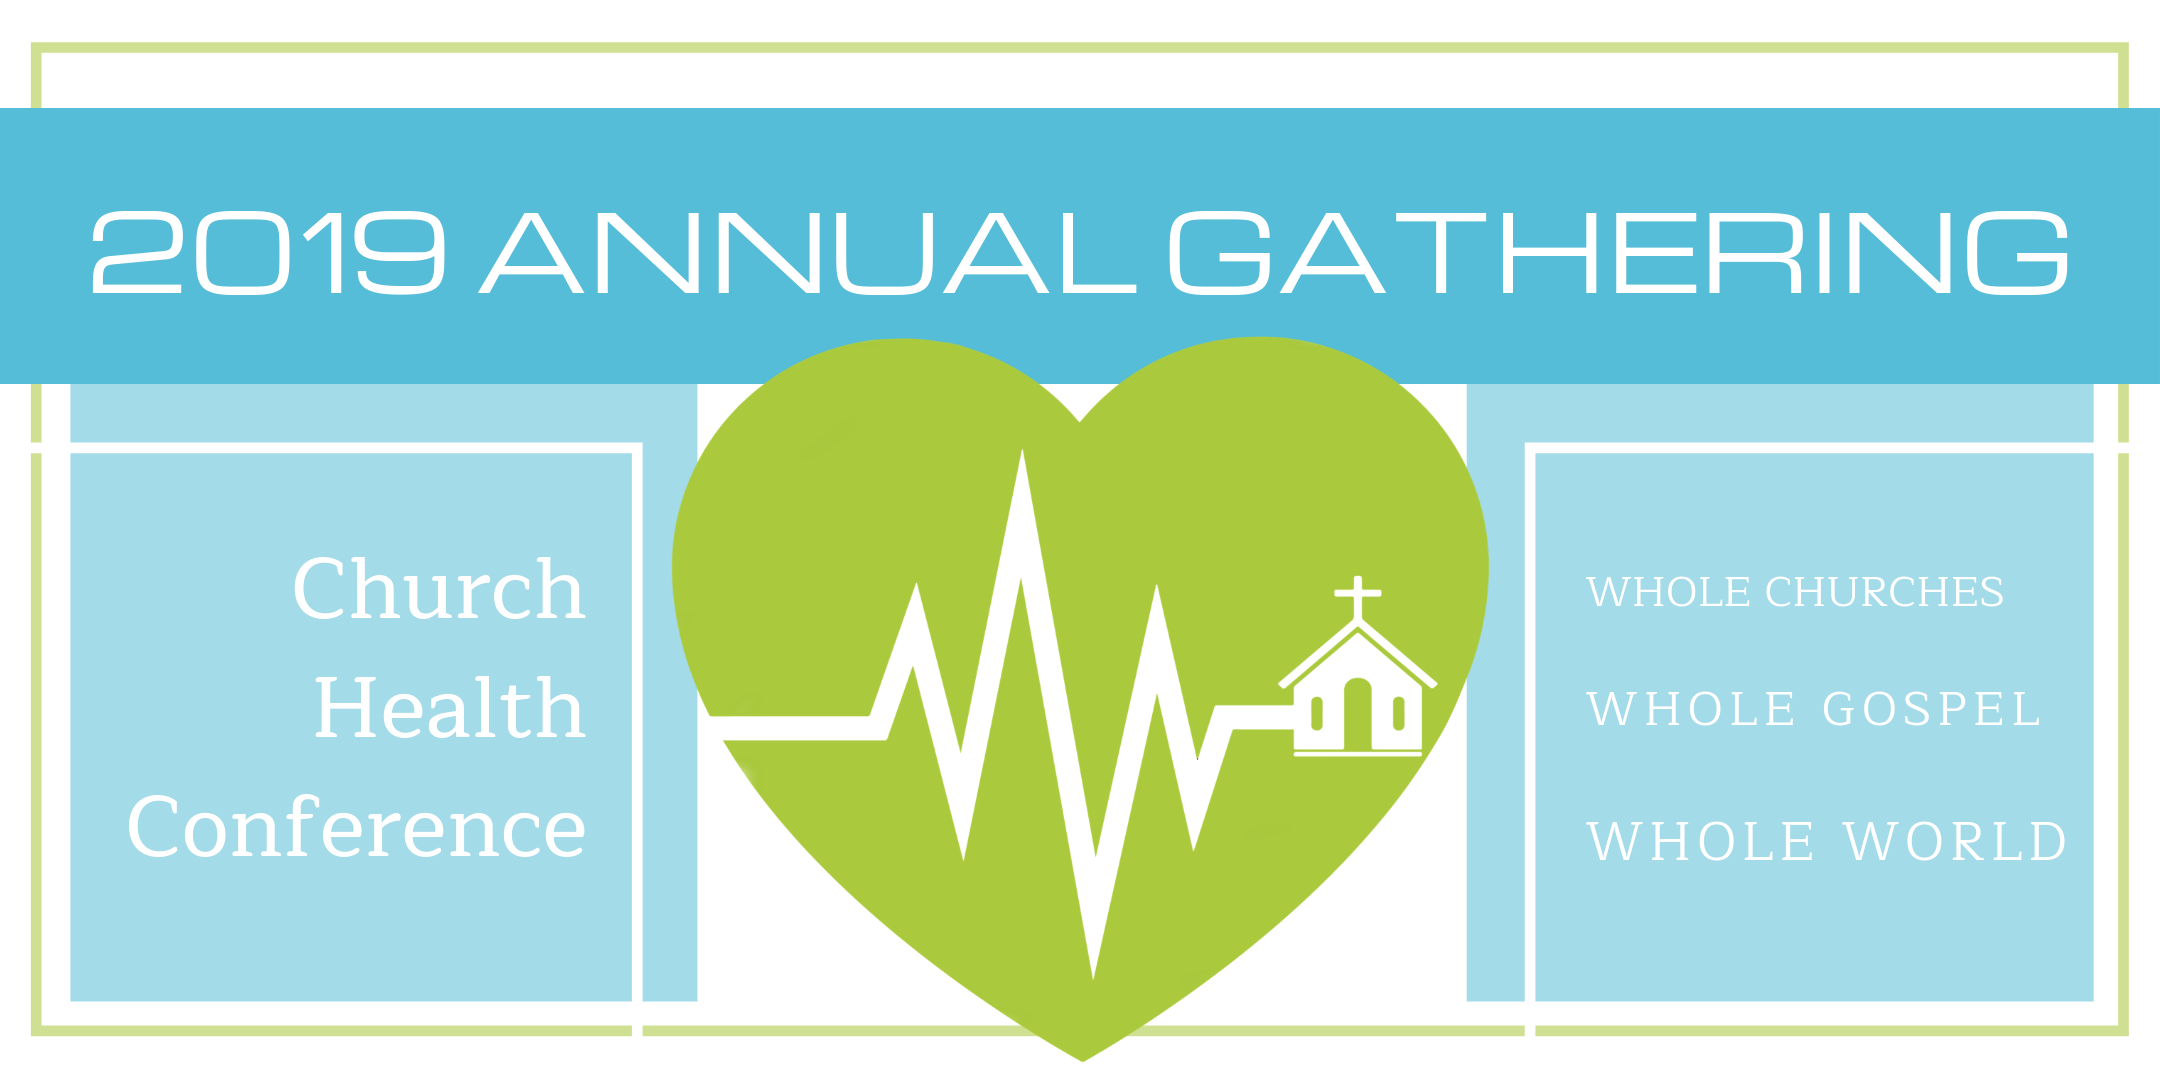 Join us for our Annual Gathering: Church Health Conference where we will be equipped, encouraged, and energized to continue well in God's will.